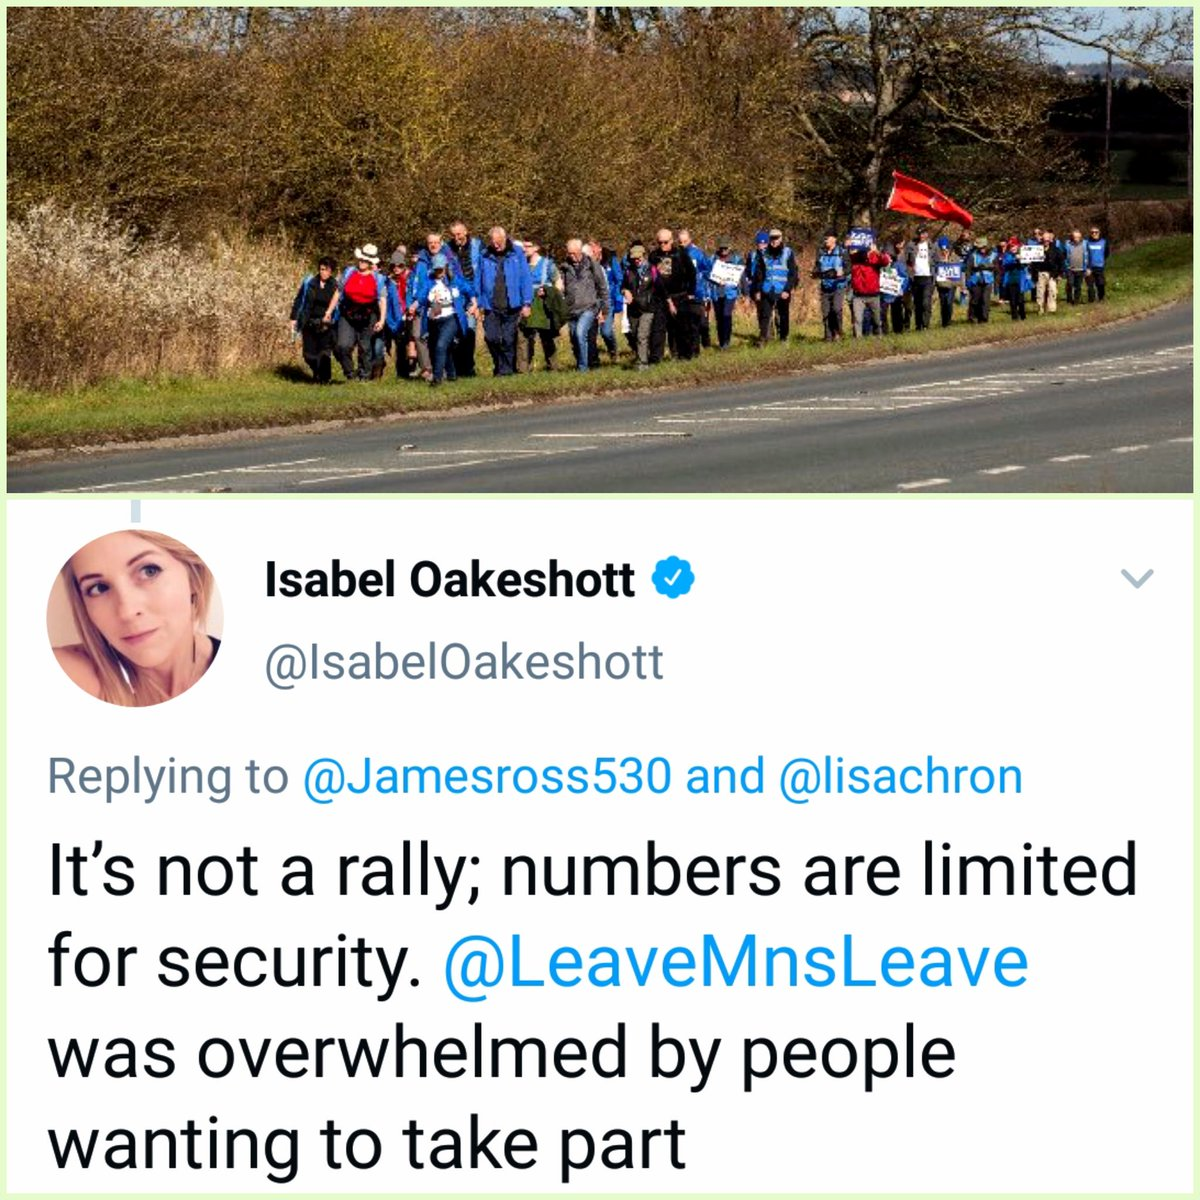 Security looking ok @IsabelOakeshott ... two stewards per marcher, just to be on safe side.